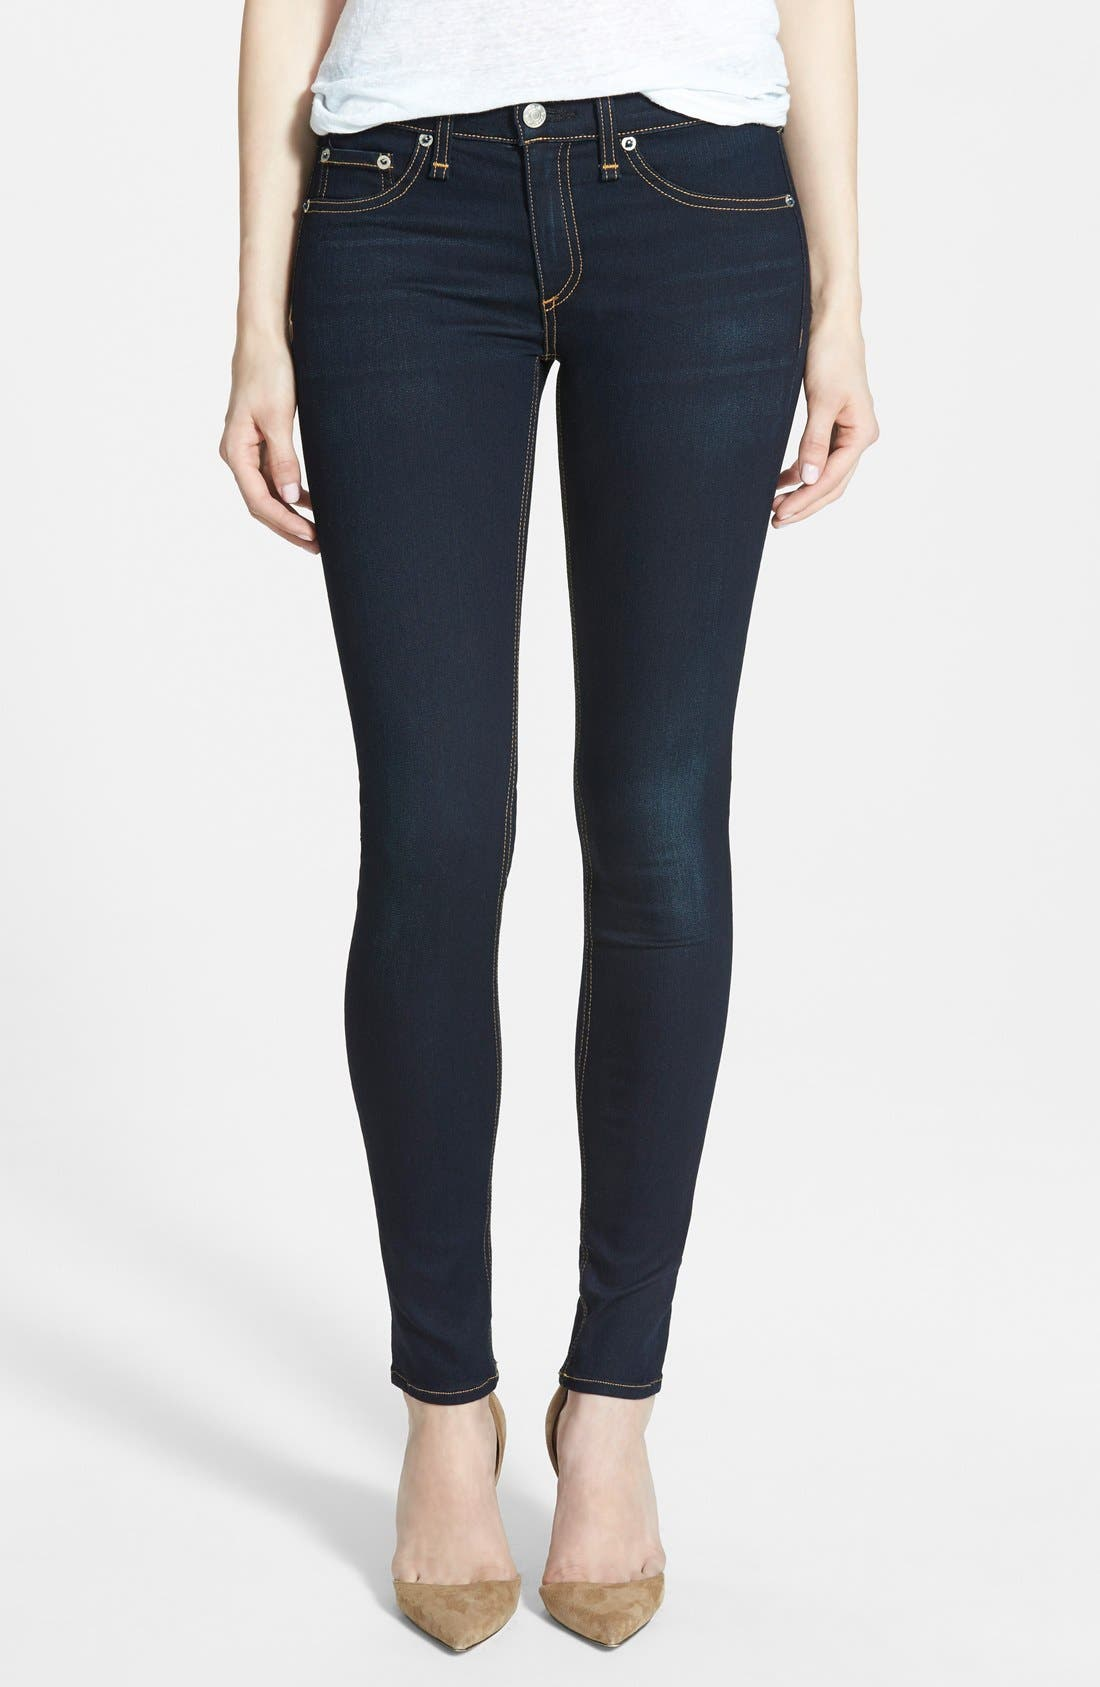 Alternate Image 1 Selected - rag & bone/JEAN 'The Skinny' Mid Rise Jeans (Coventry)